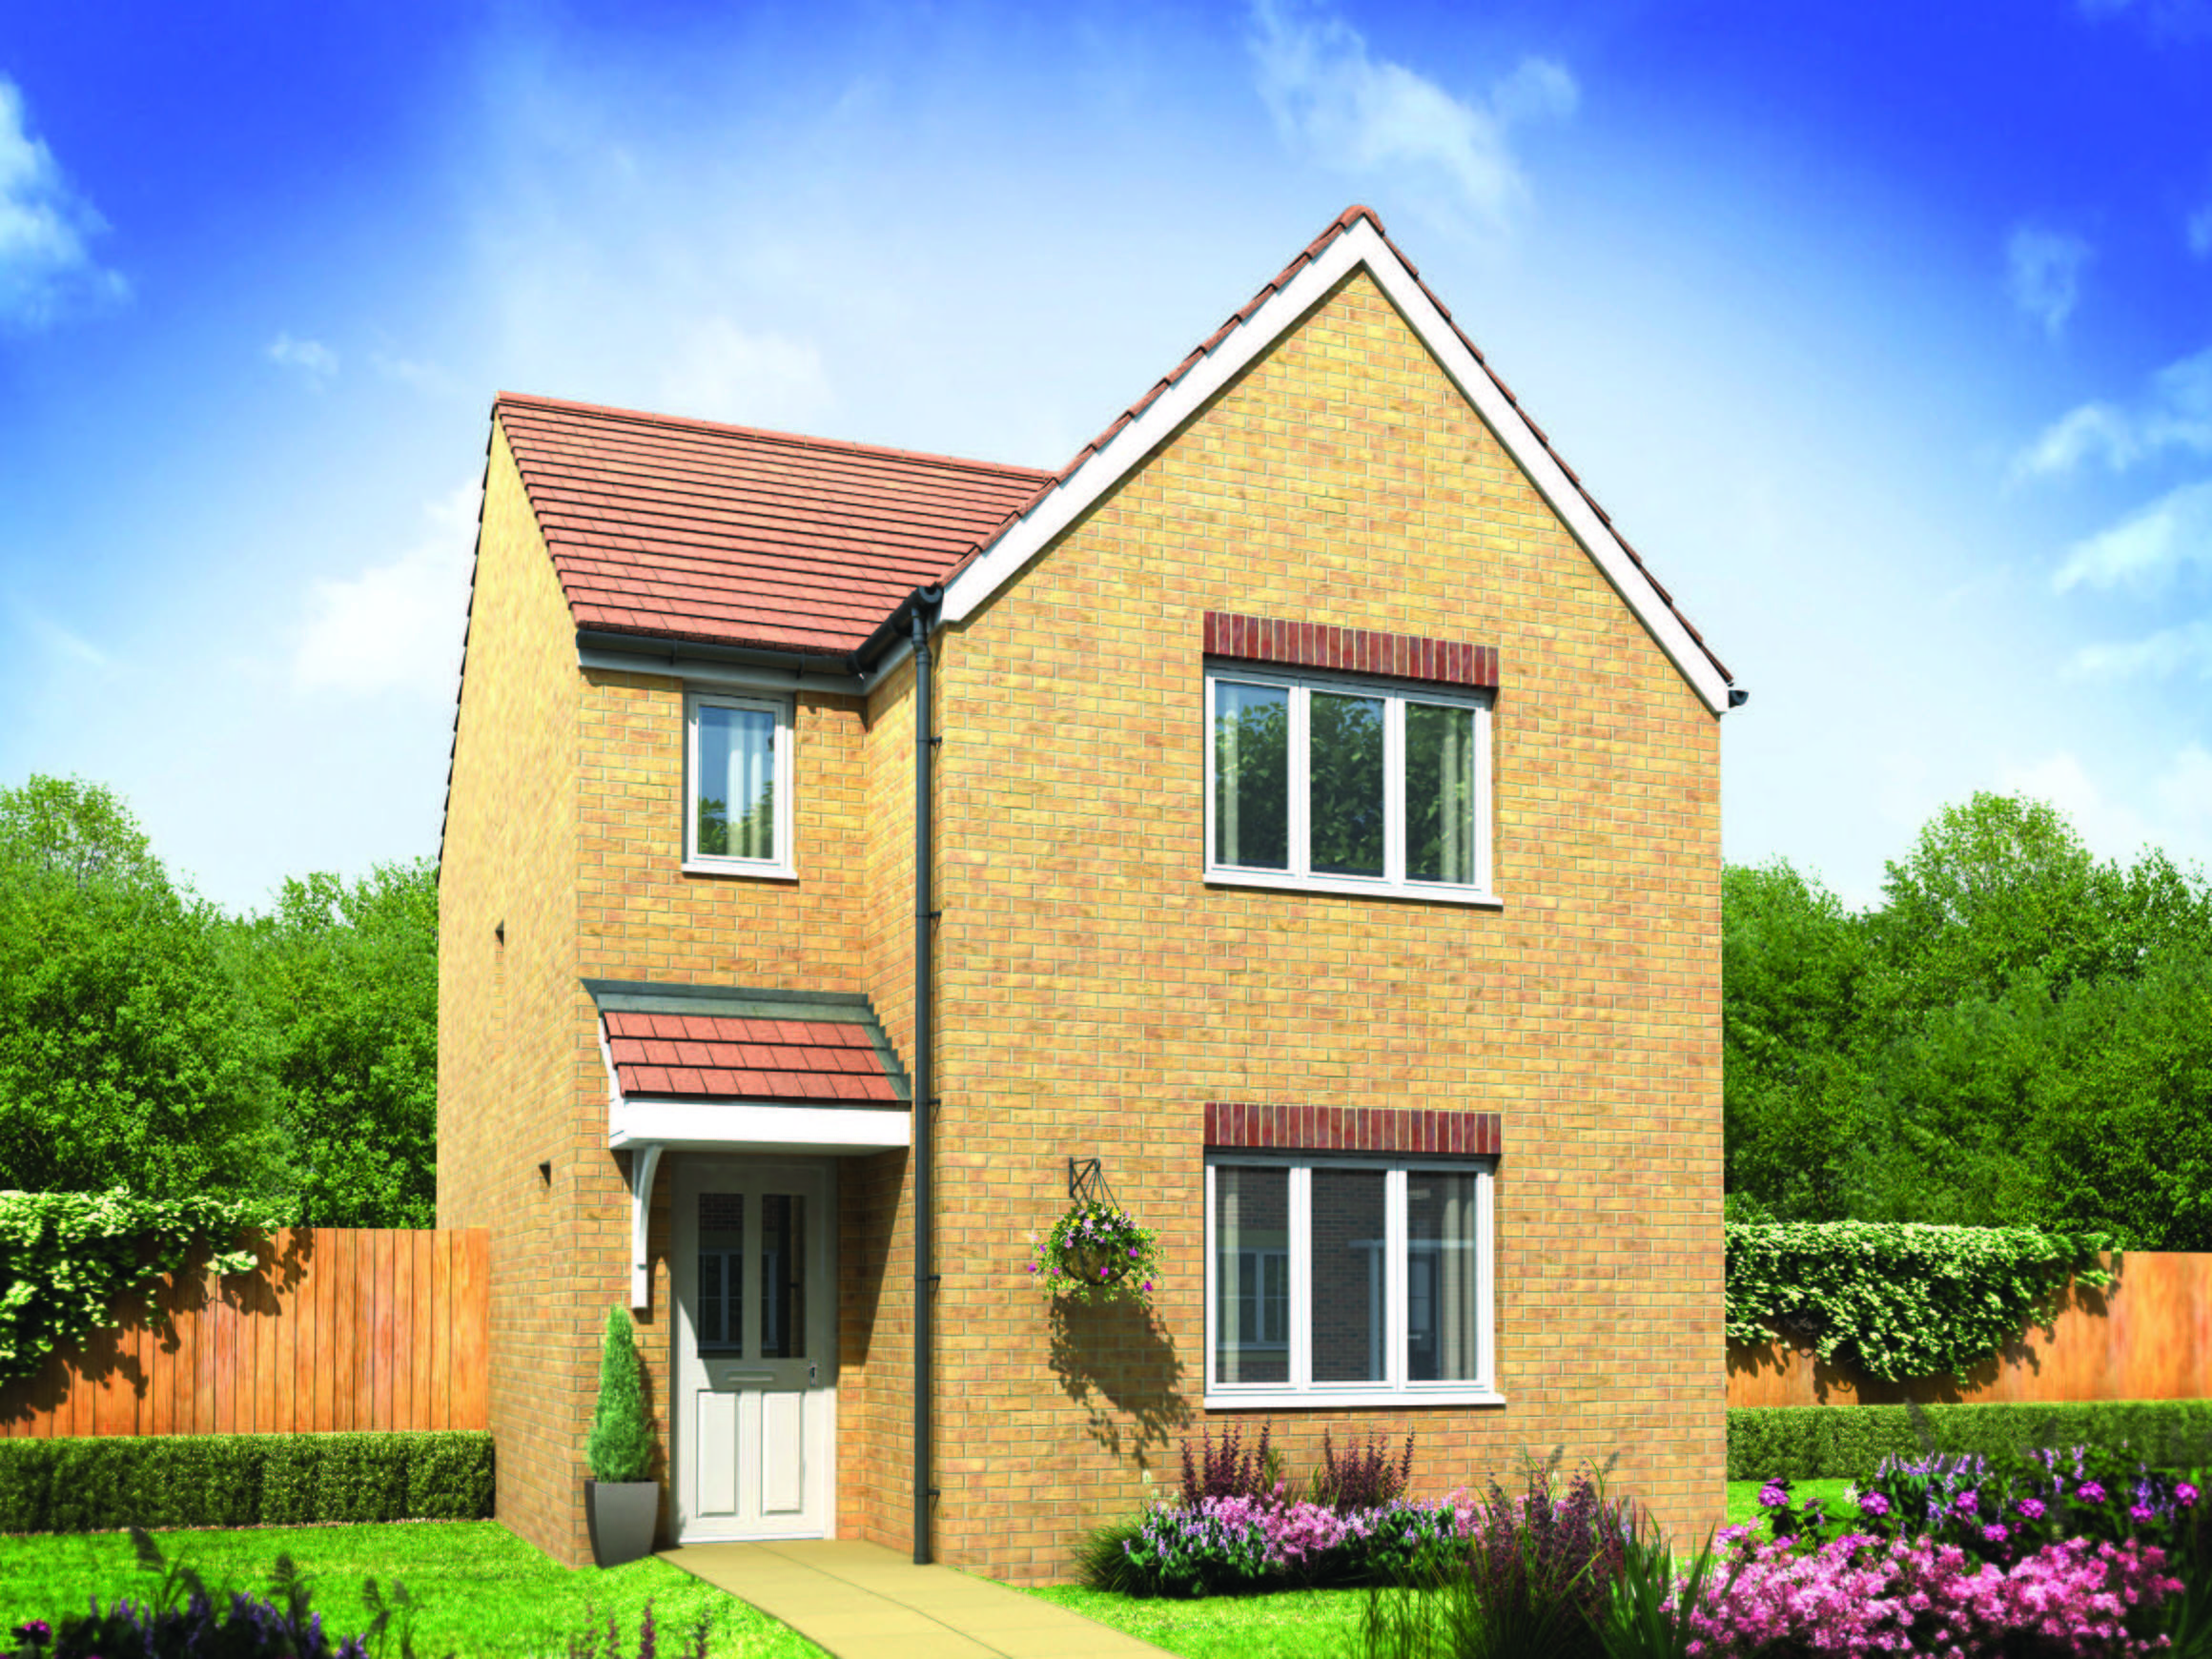 Best Houses For Sale In Coventry West Midlands Cv6 6Fw With Pictures